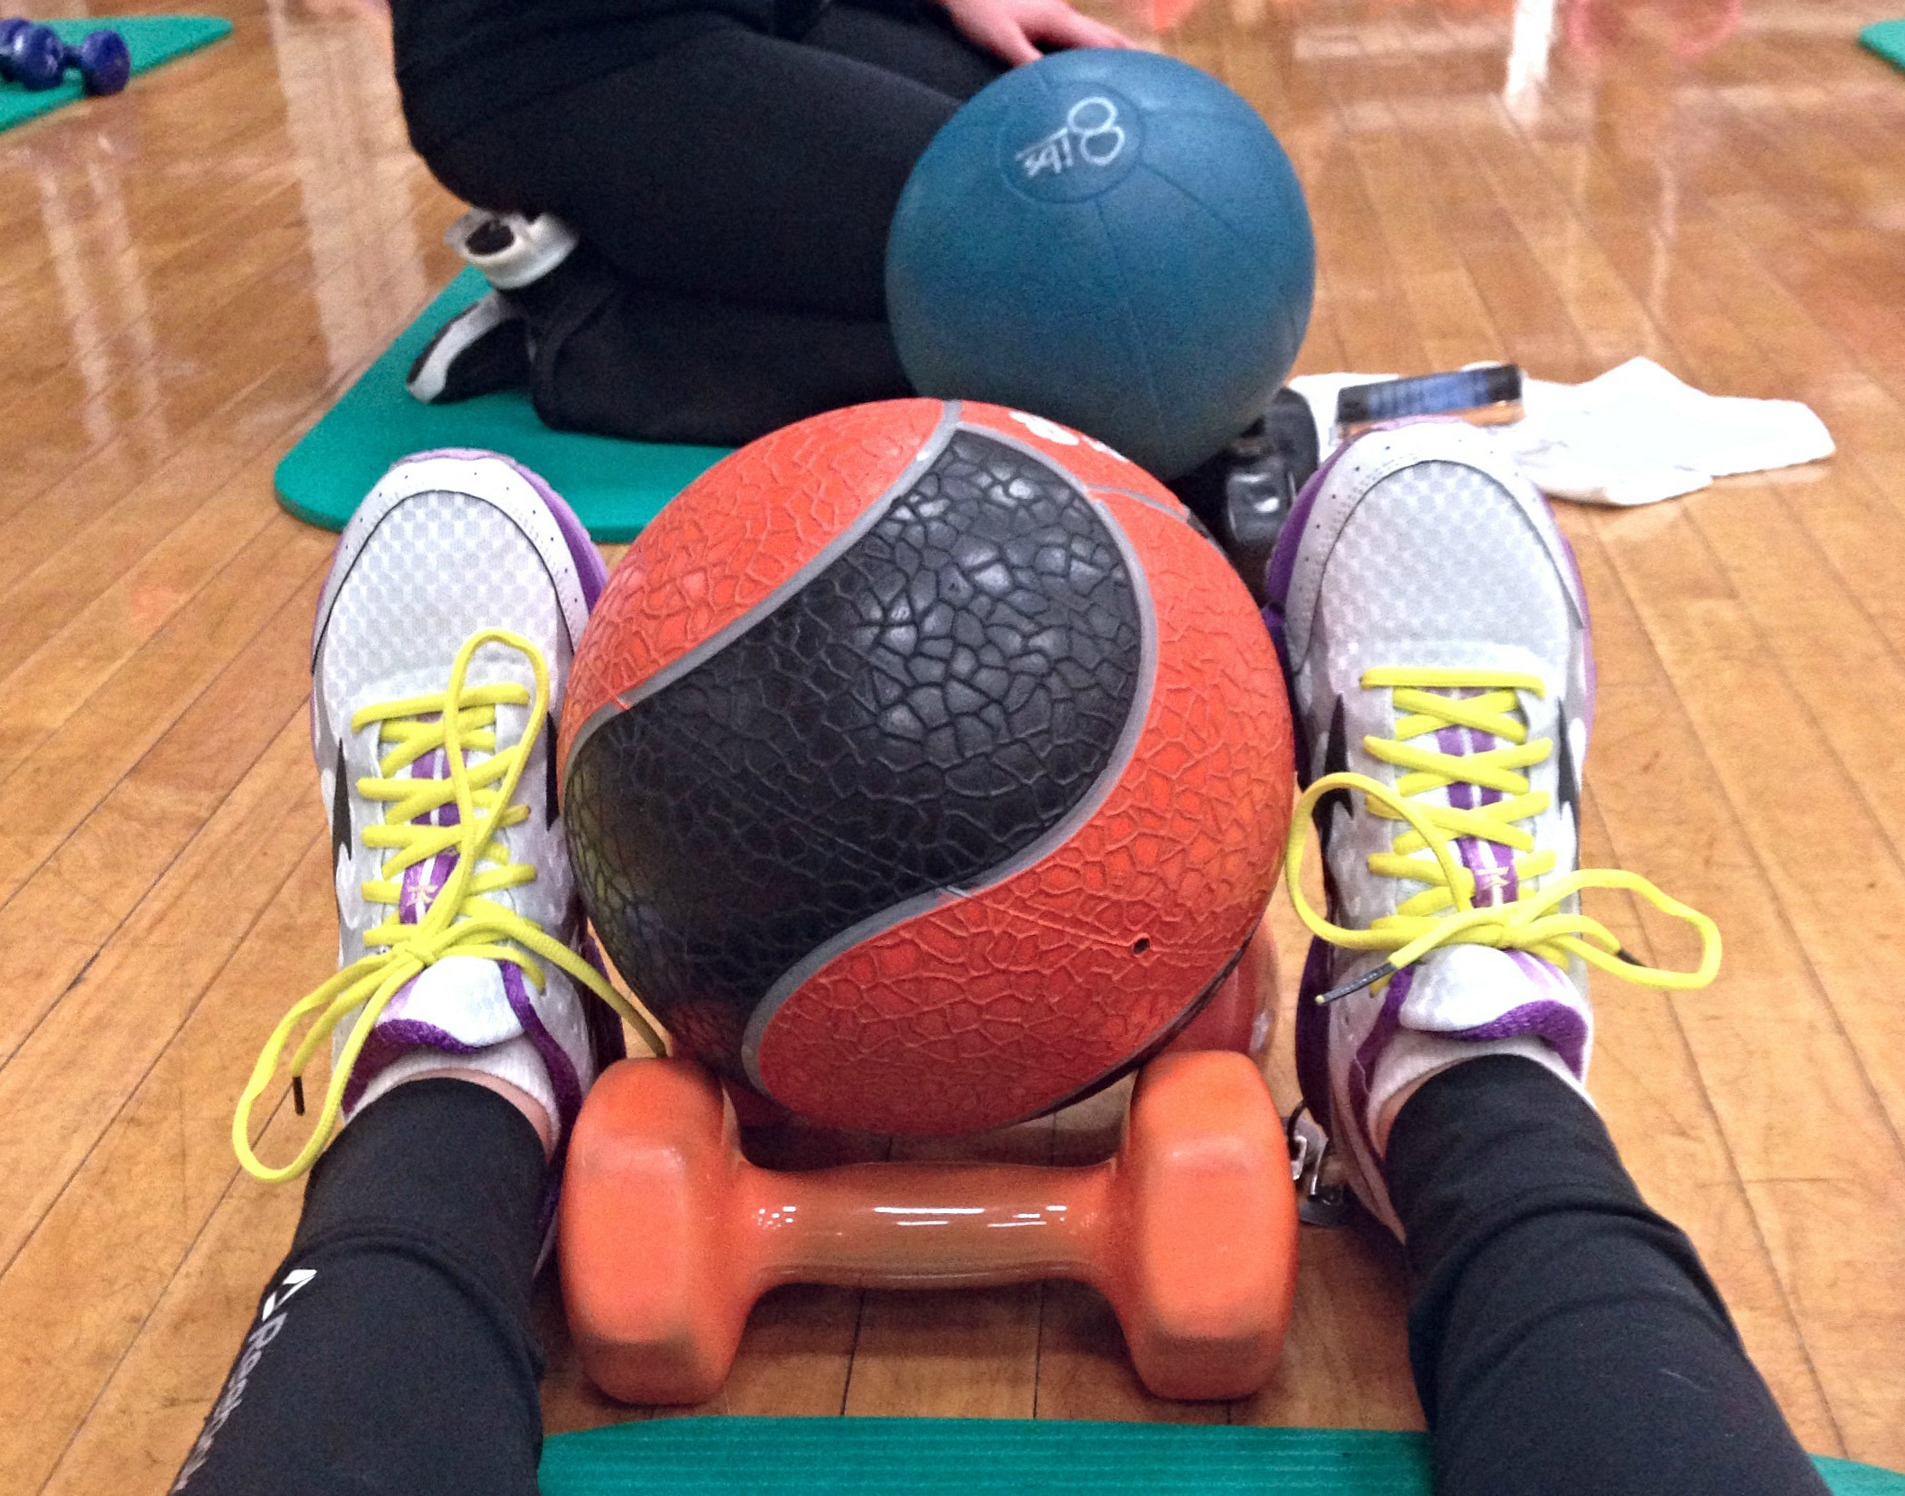 fitness pilates with medicine ball and weights